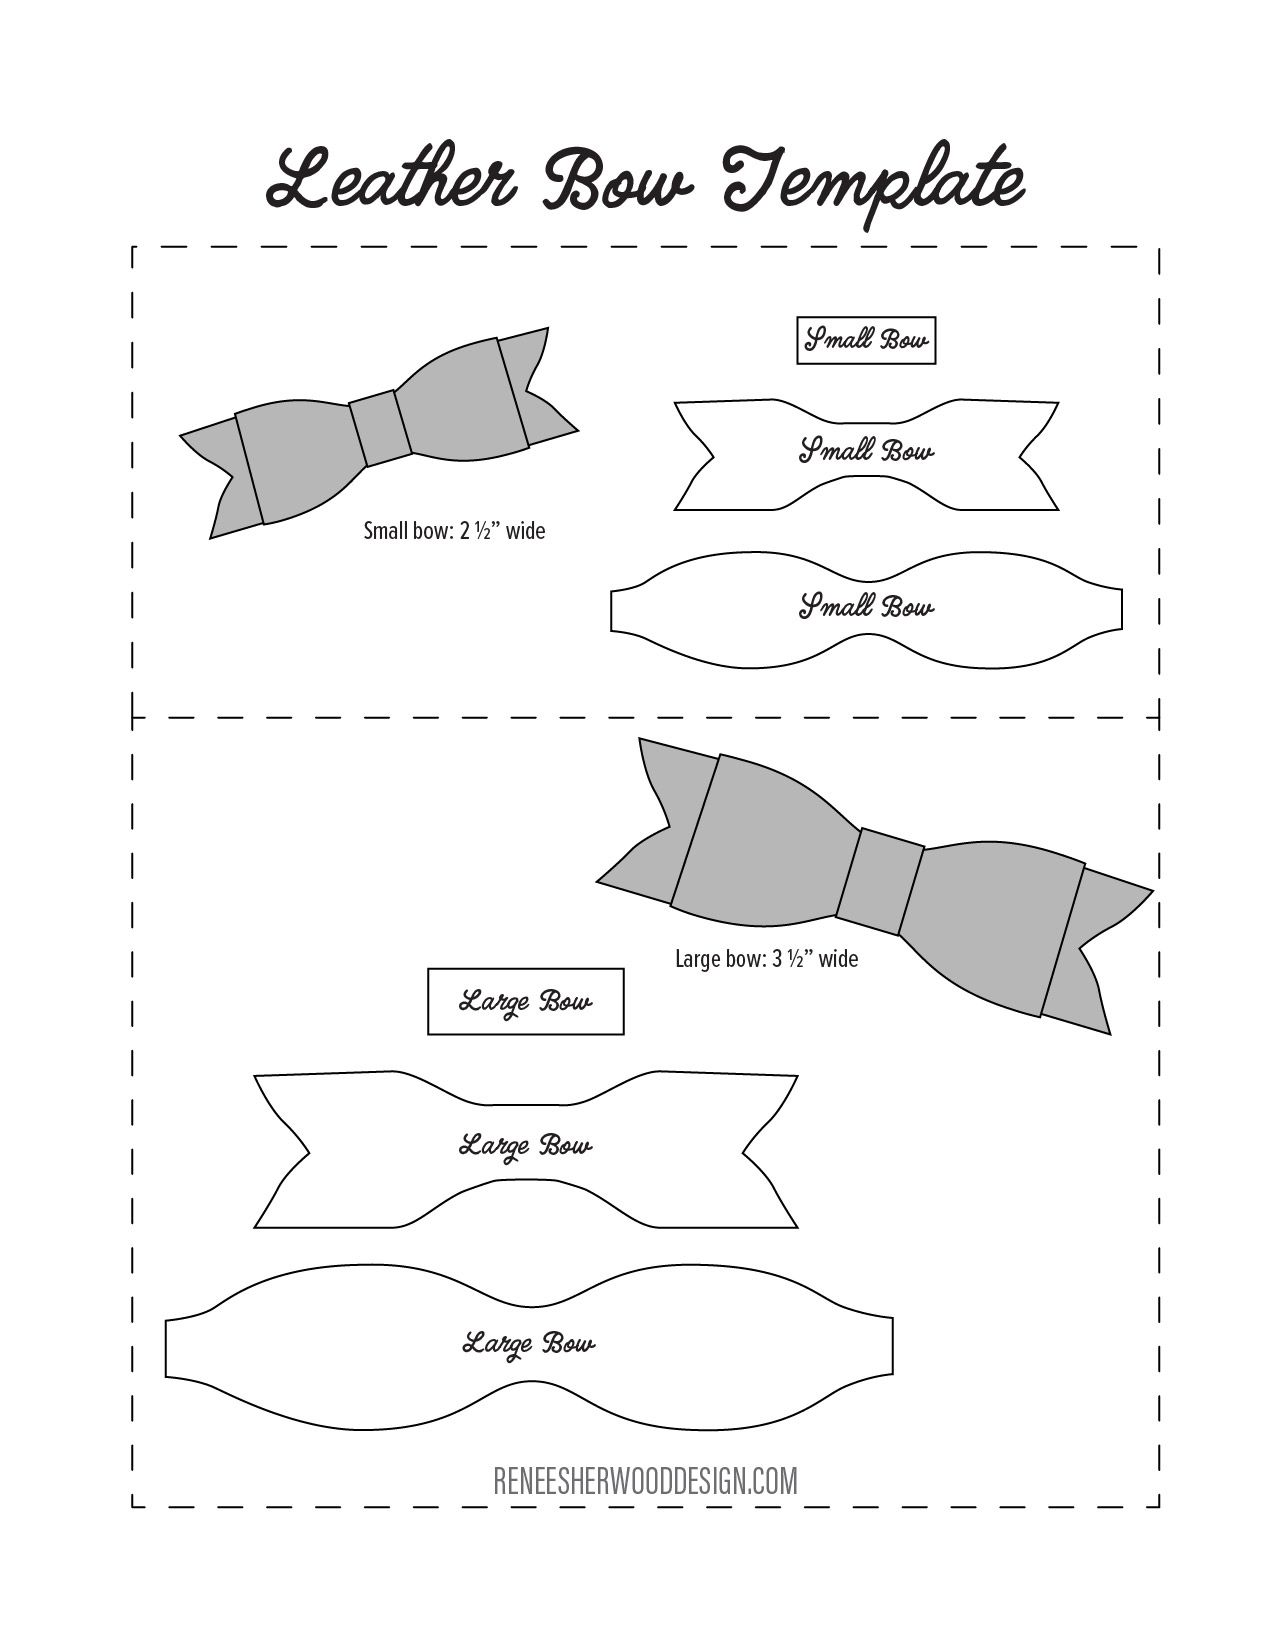 Free No Sew Leather Or Felt Bow Template Download At Www Rsherwooddesign Com Diy Leather Bows Felt Bows Diy Hair Bows